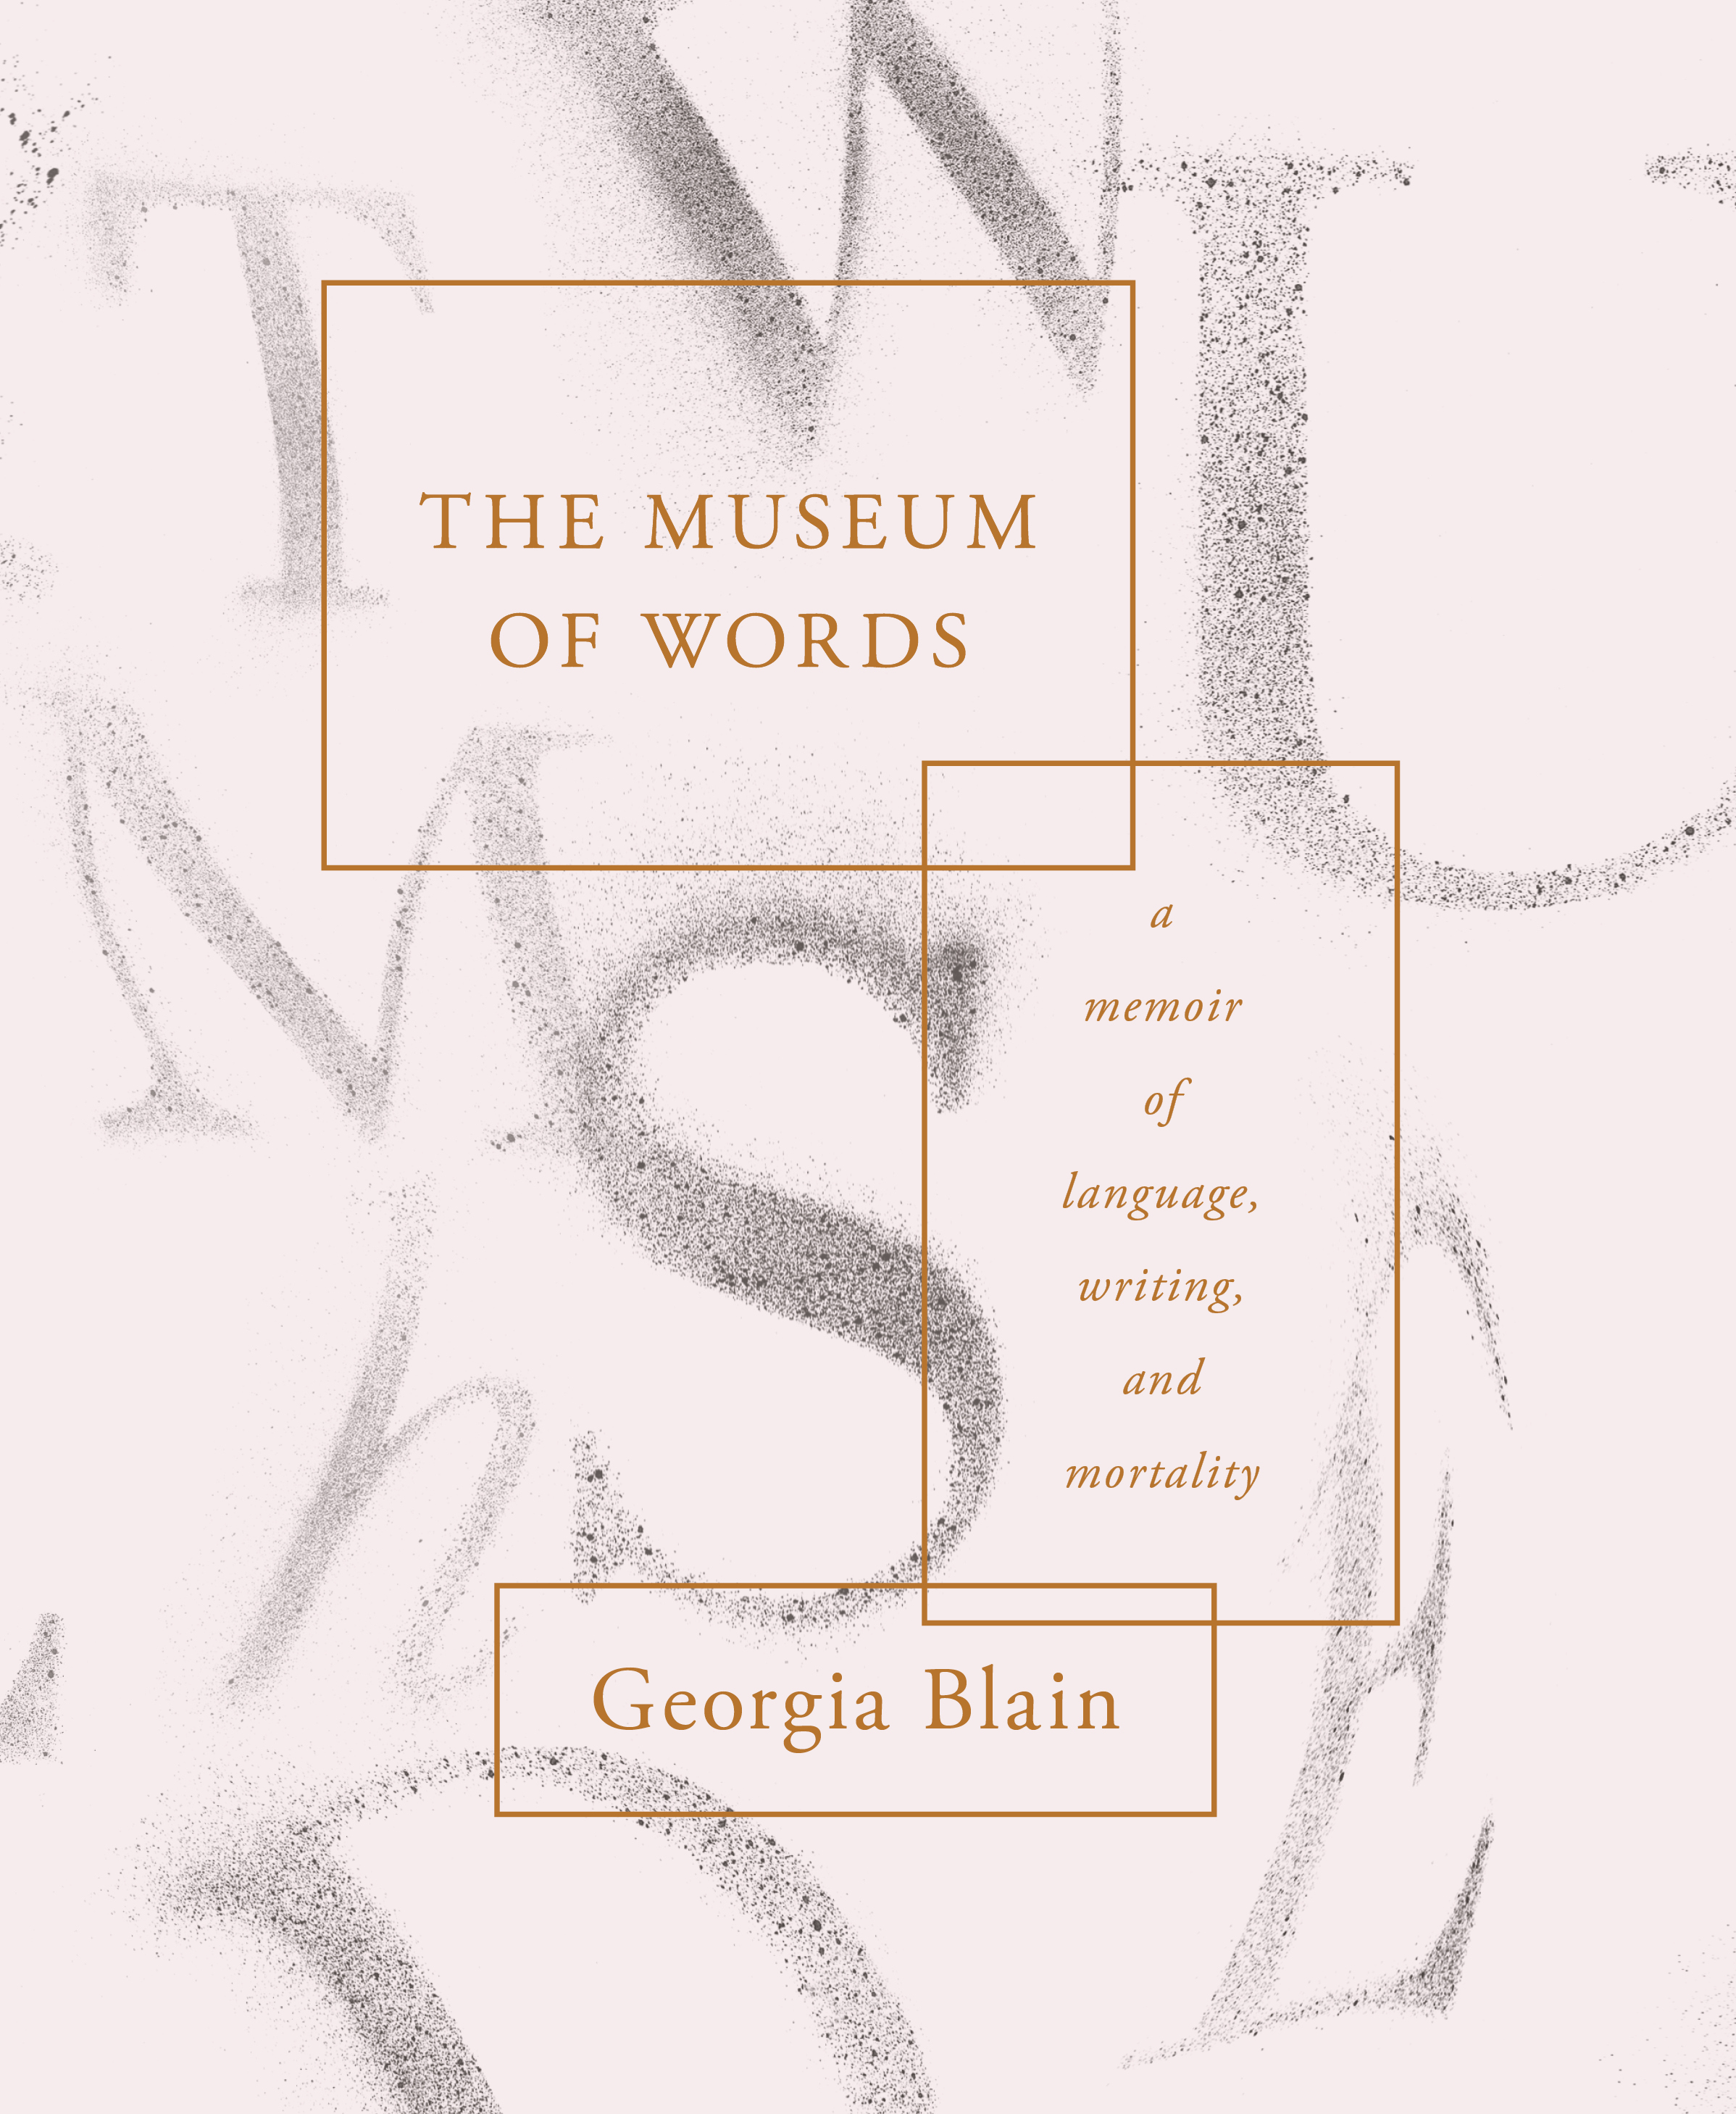 Museum of words shortlisted for indie awards news scribe georgia blains final book the museum of words a memoir of language writing and mortality has been shortlisted for the indie book awards 2018 ccuart Choice Image